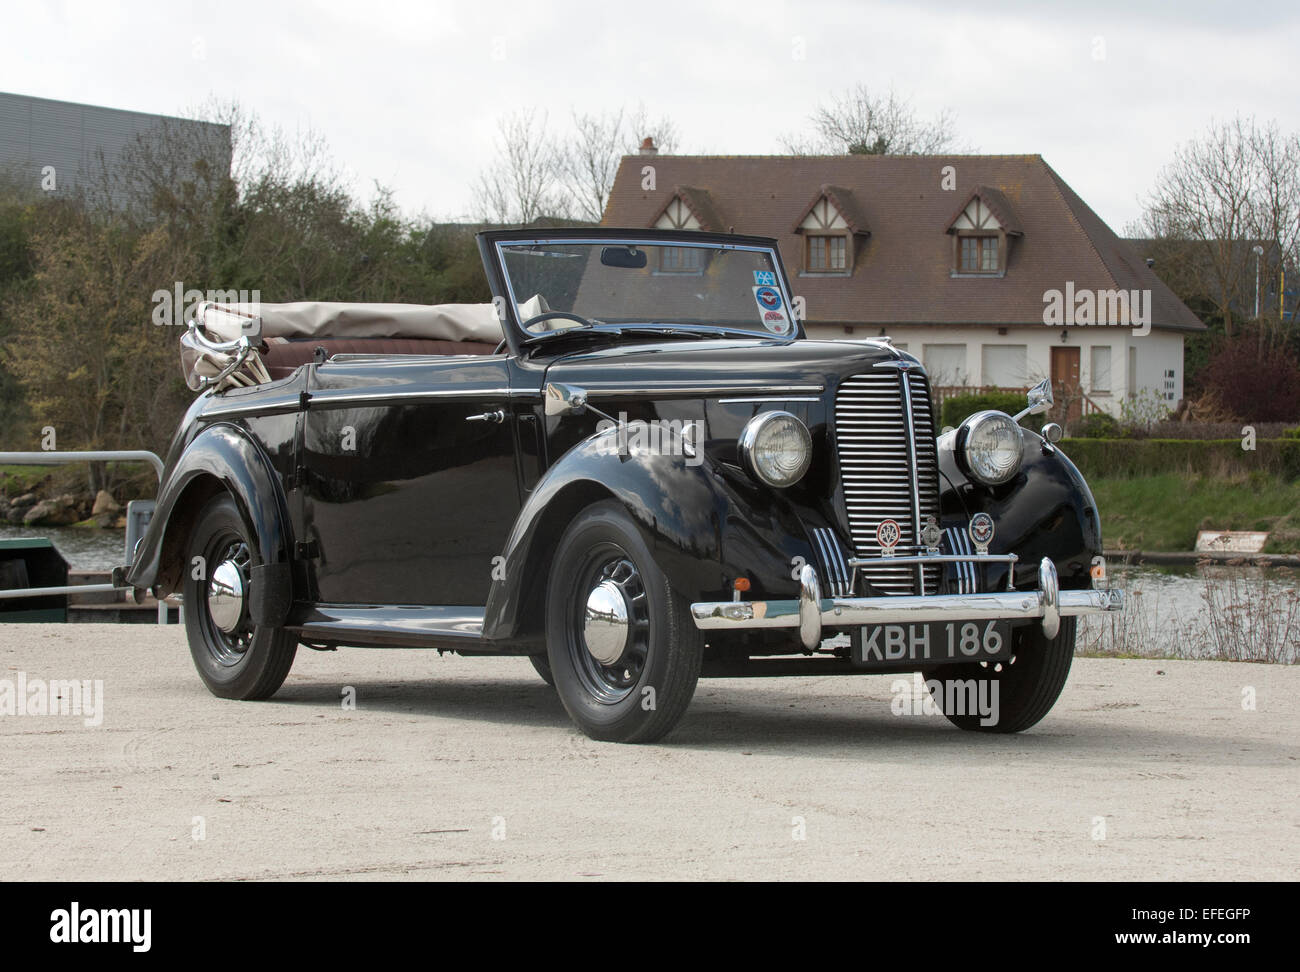 1939 Hillman Minx convertible driving on a country lane, British pre war family car - Stock Image